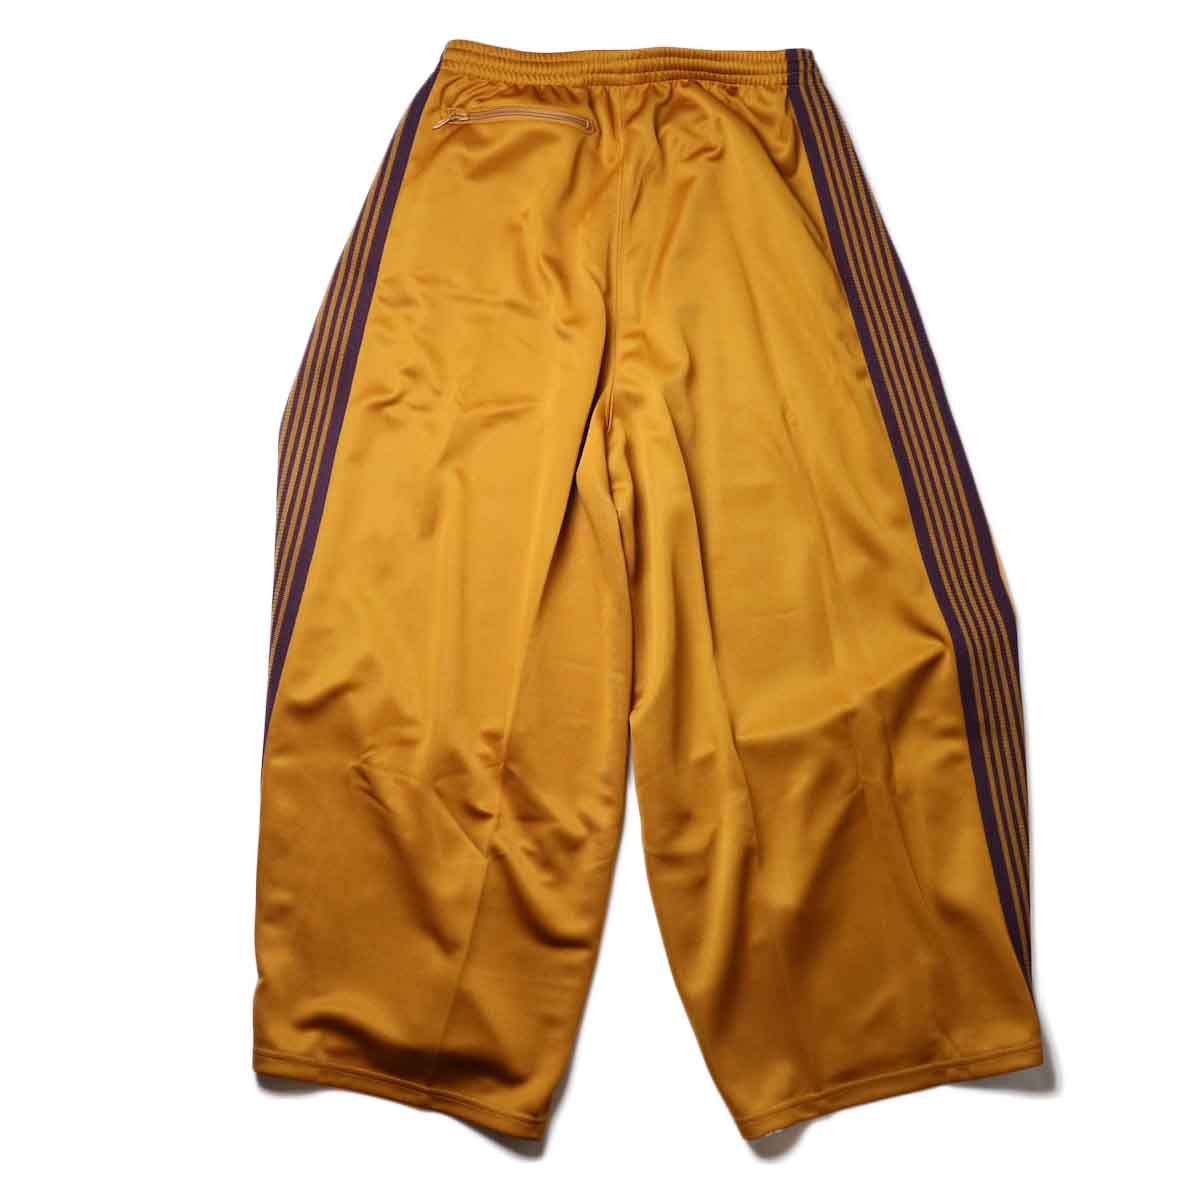 Needles / H.D. TRACK PANT - POLY SMOOTH (Mustard)背面